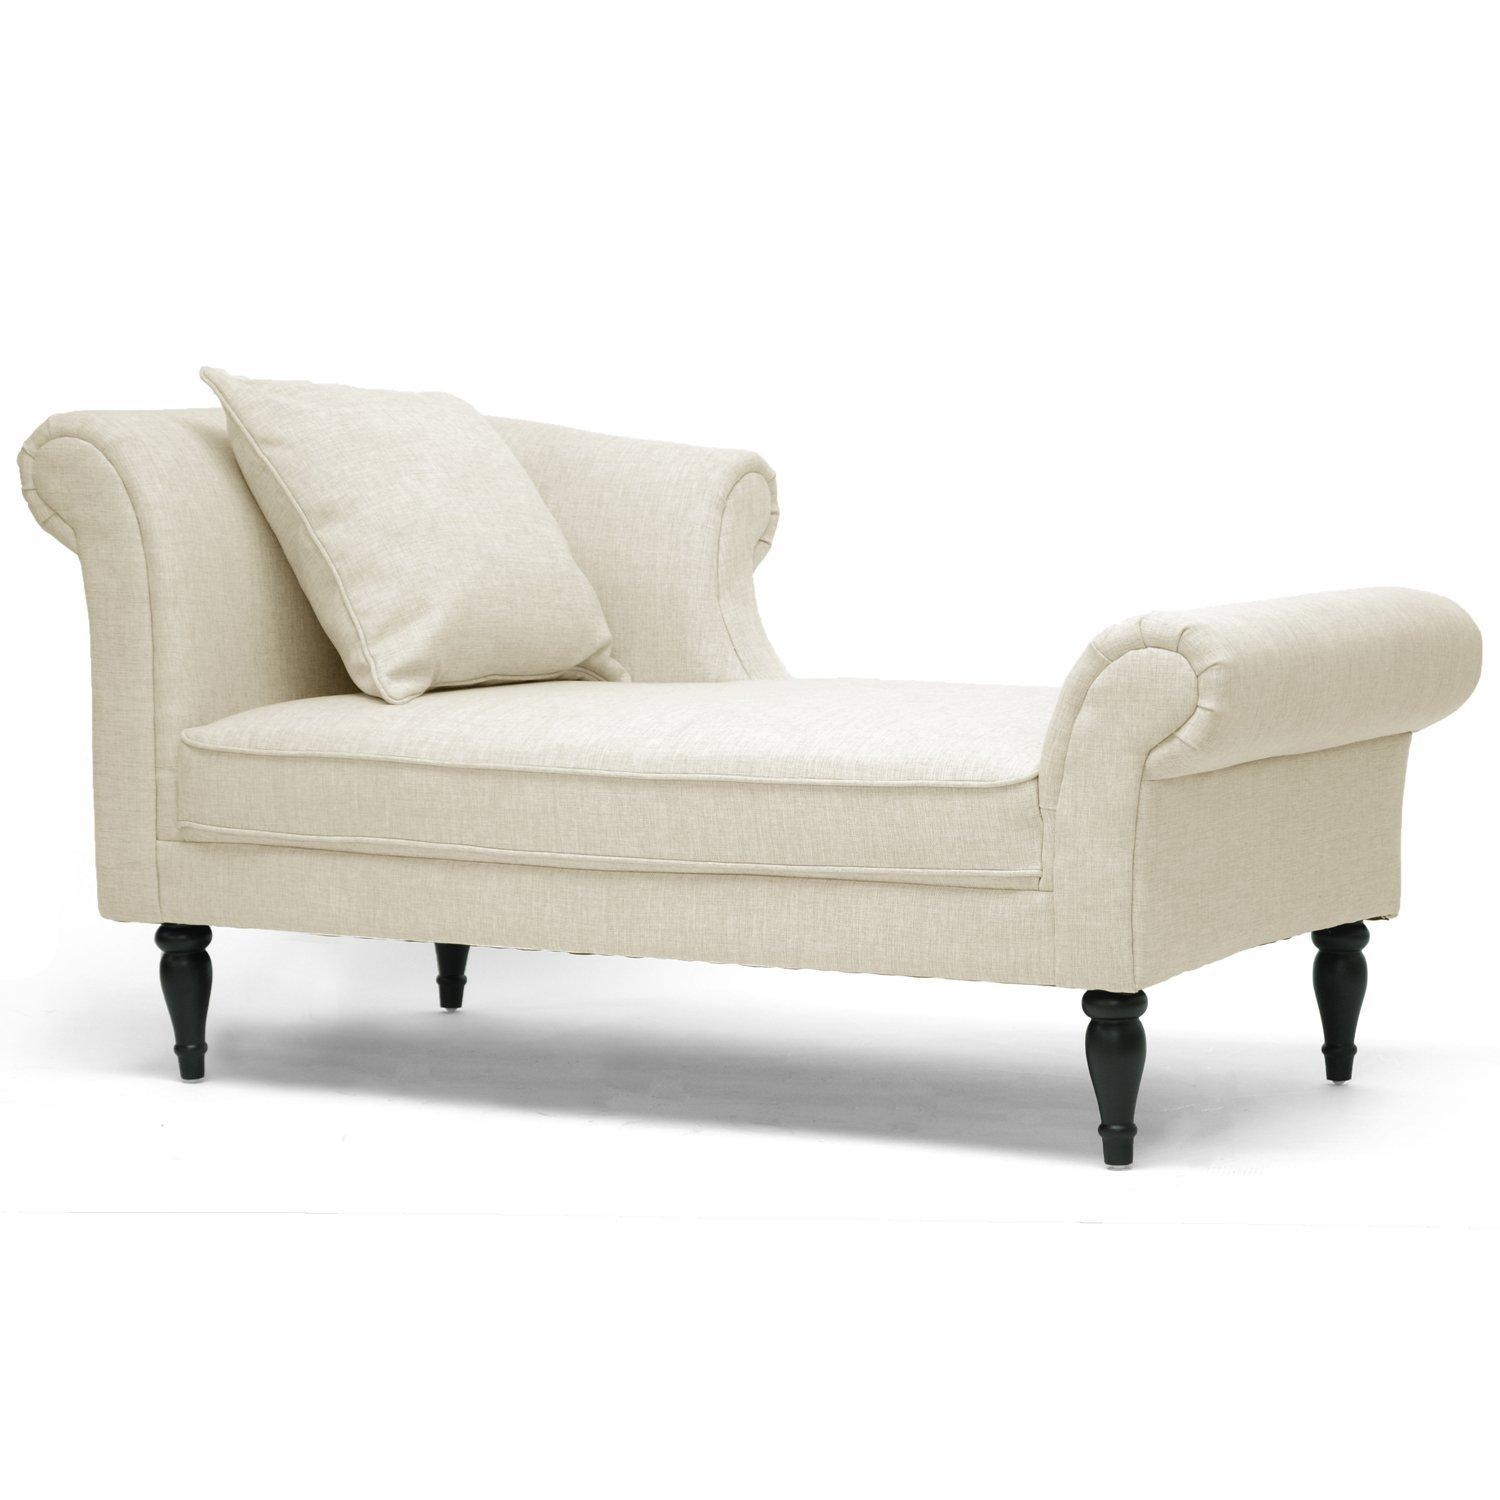 Sectional Sofas Kijiji Kingston: 20 Inspirations Angled Chaise Sofa